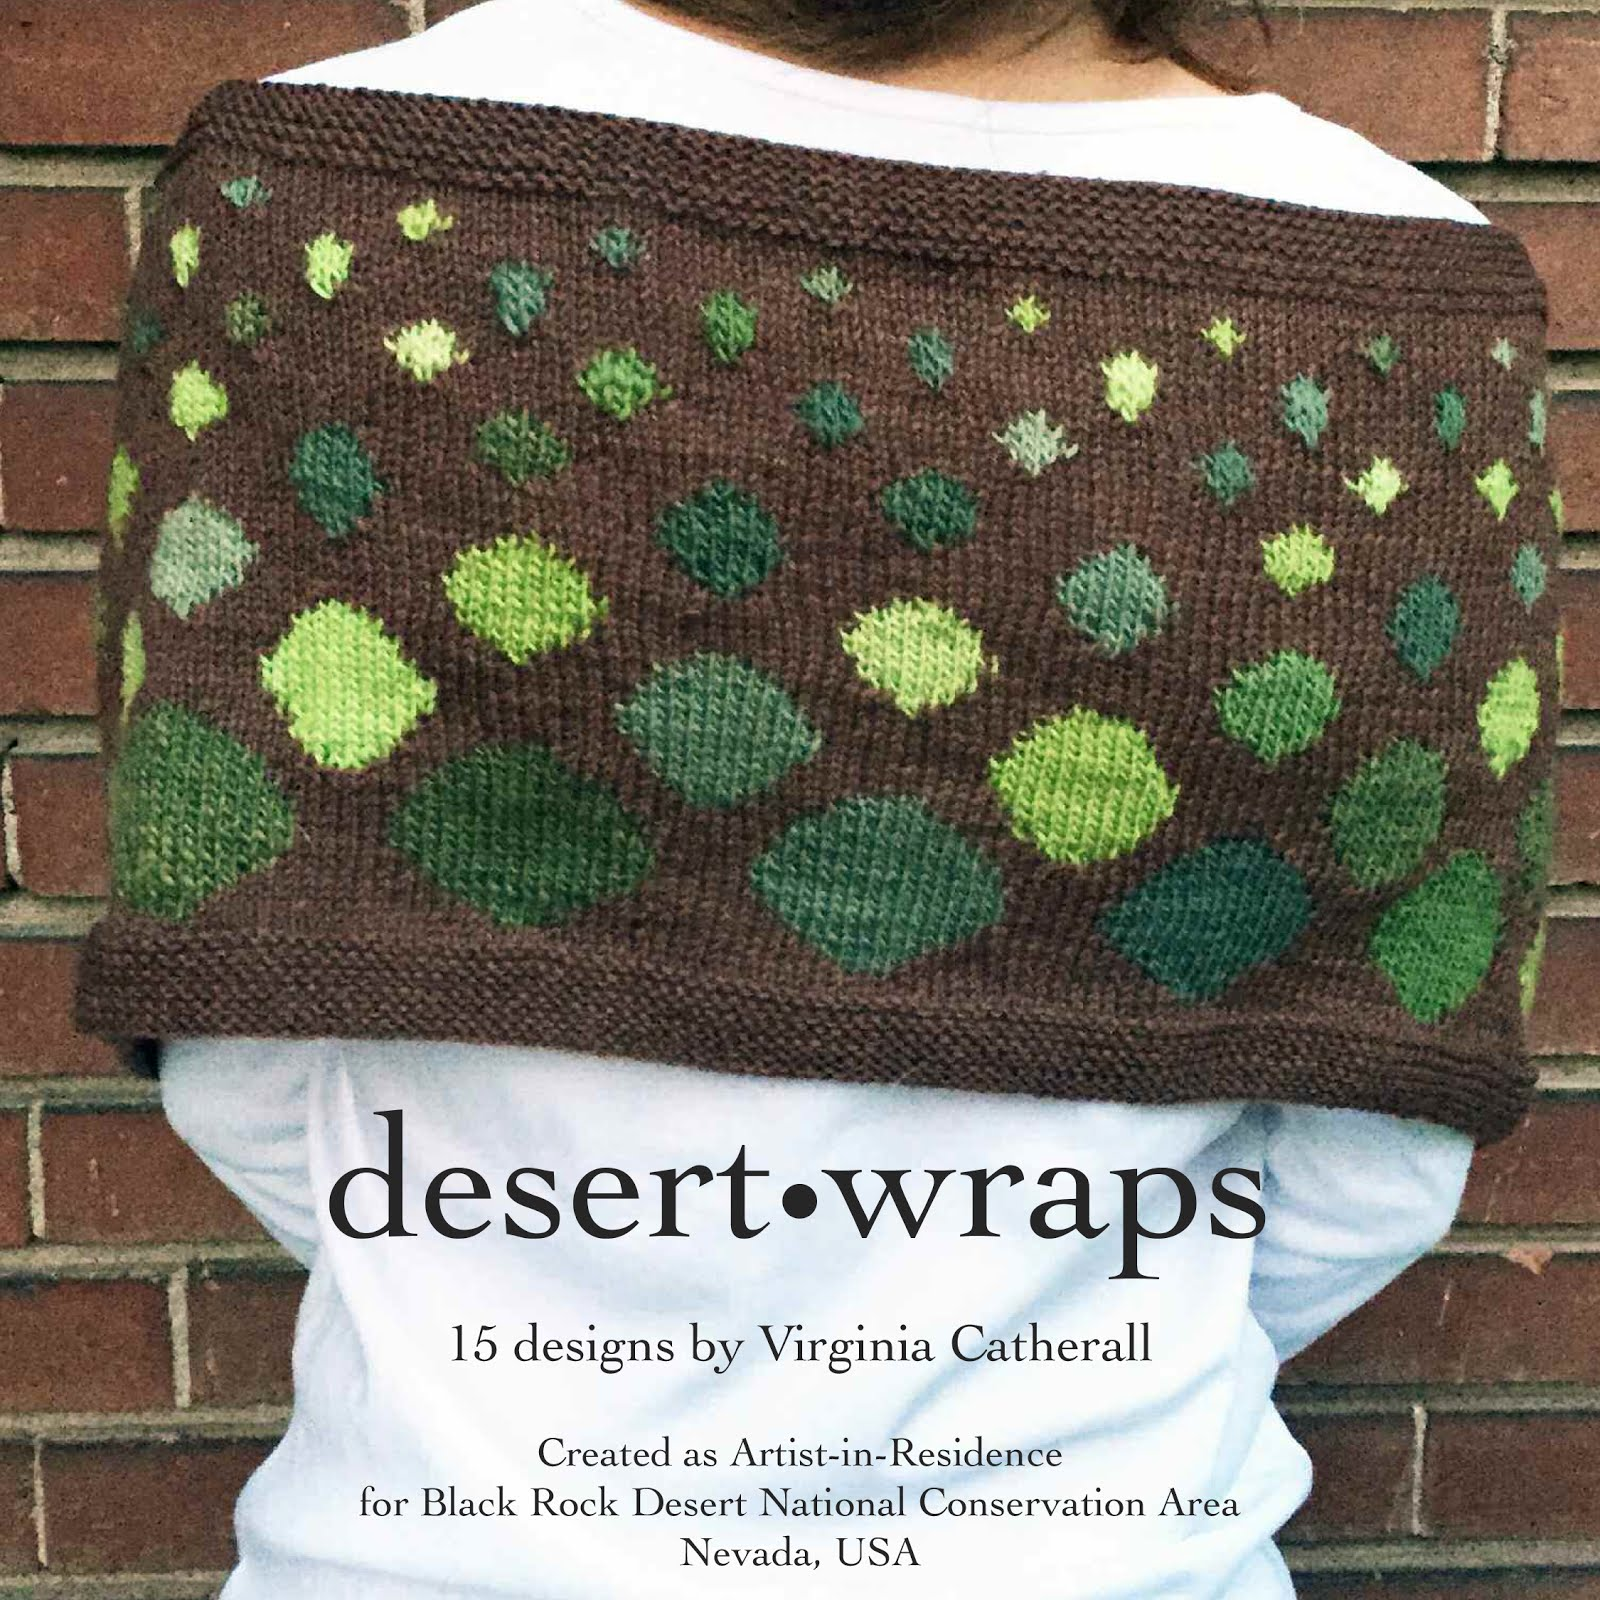 desert•wraps e-book now on sale!